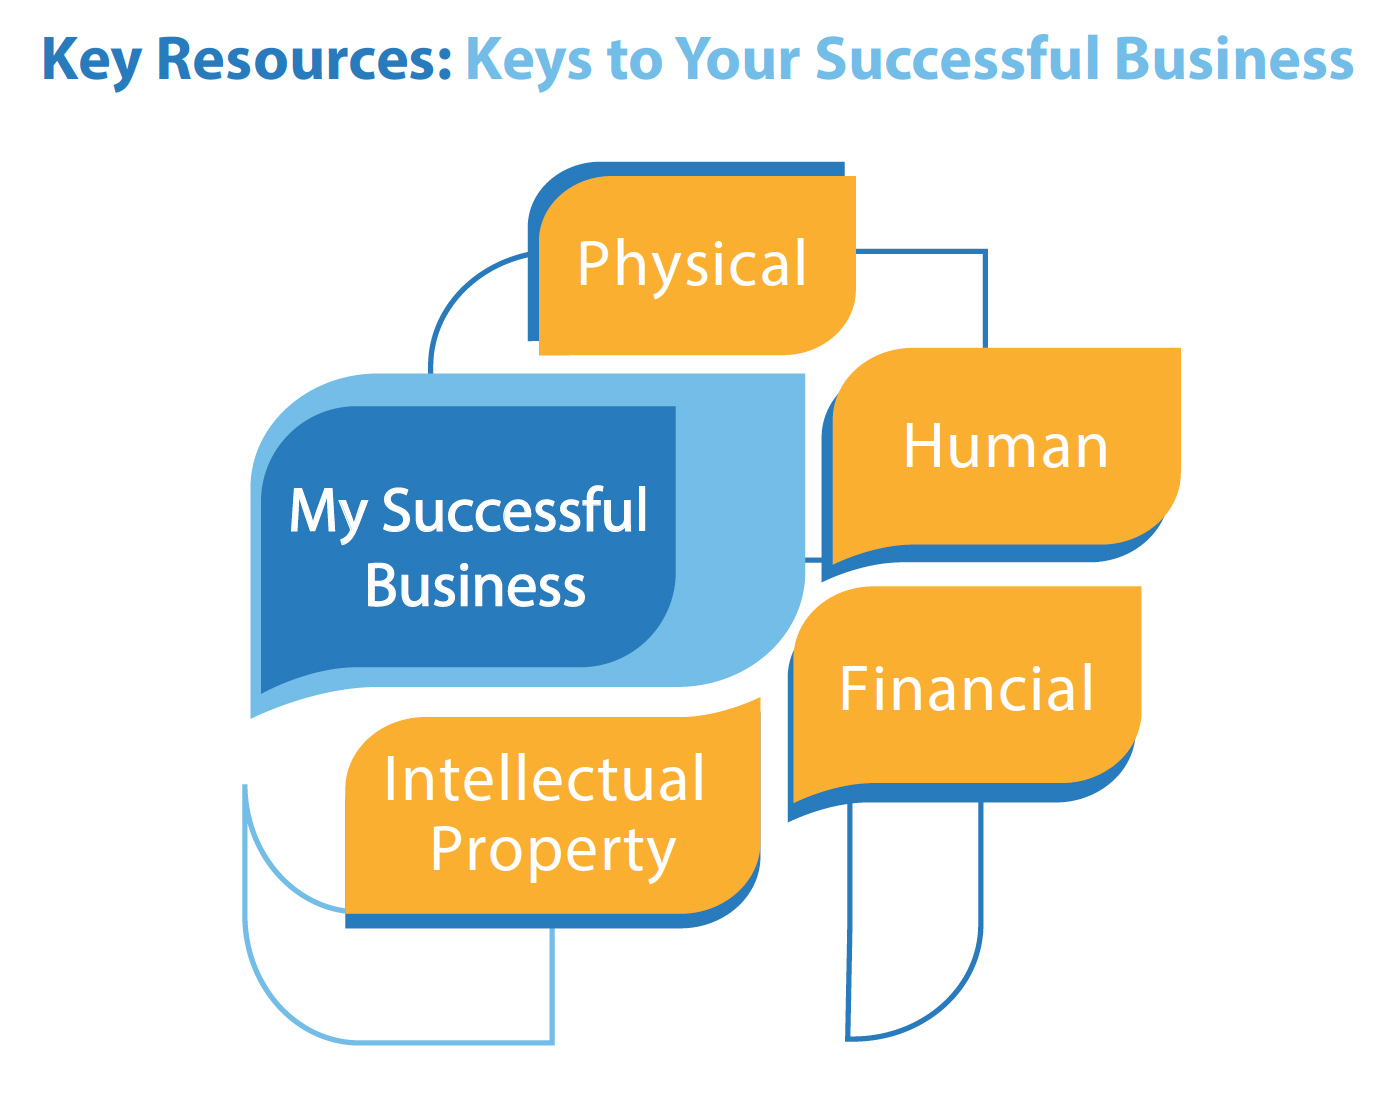 Key Resources Are Essential To Your Business Success Score